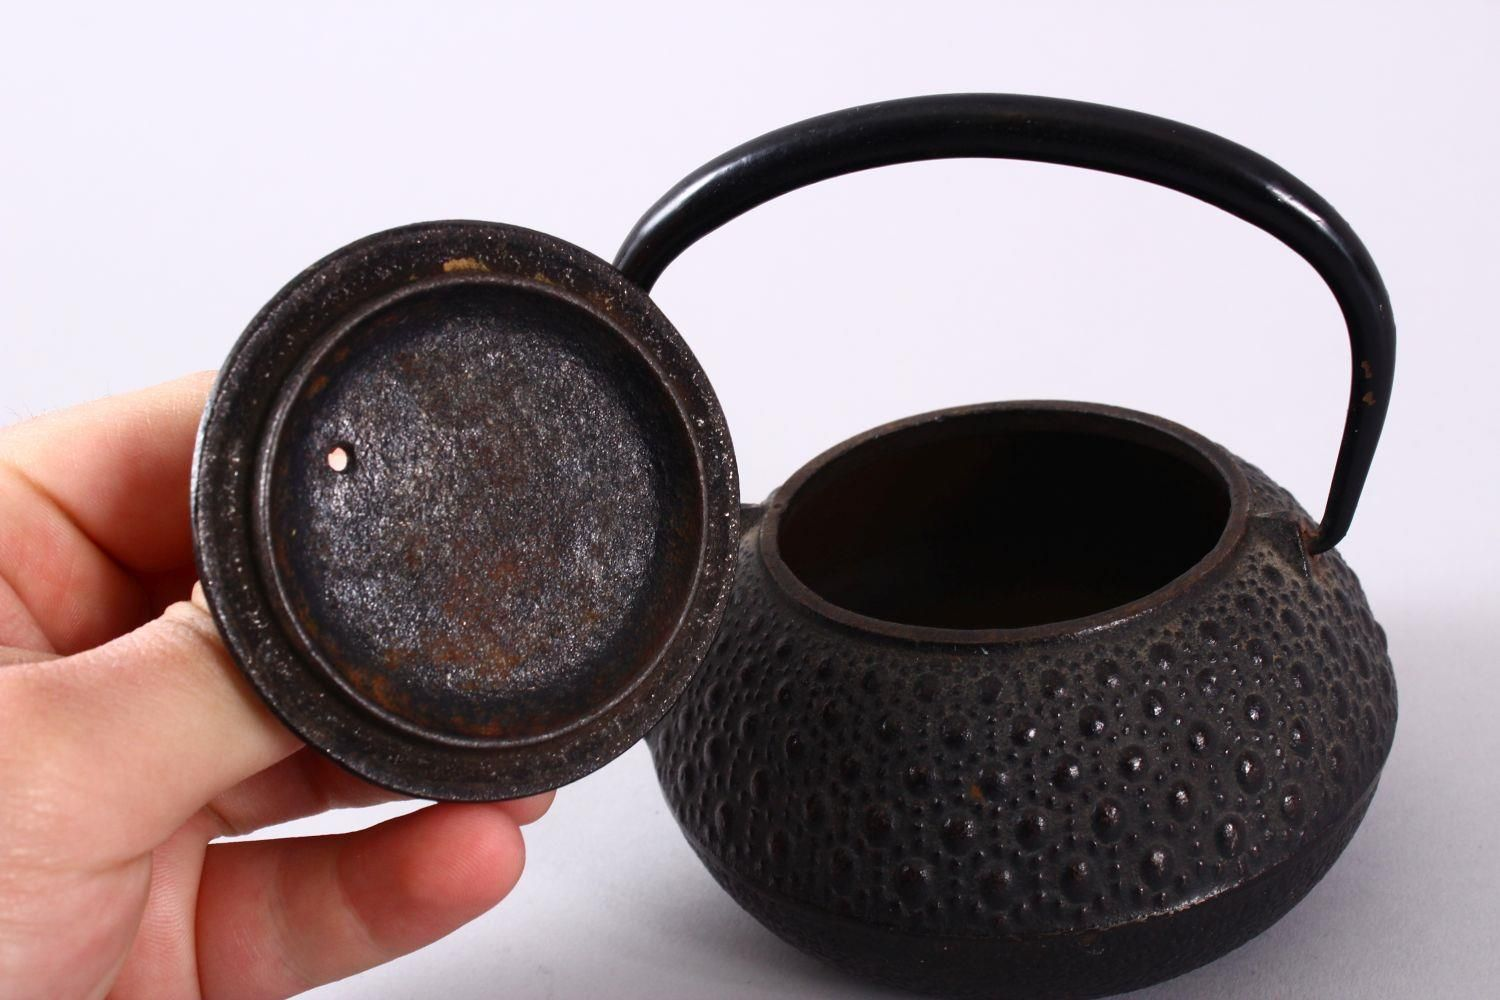 A JAPANESE IRON / METAL MOULDED TEAPOT & COVER, the body with moulded stud decoration, possibly iron - Image 4 of 5